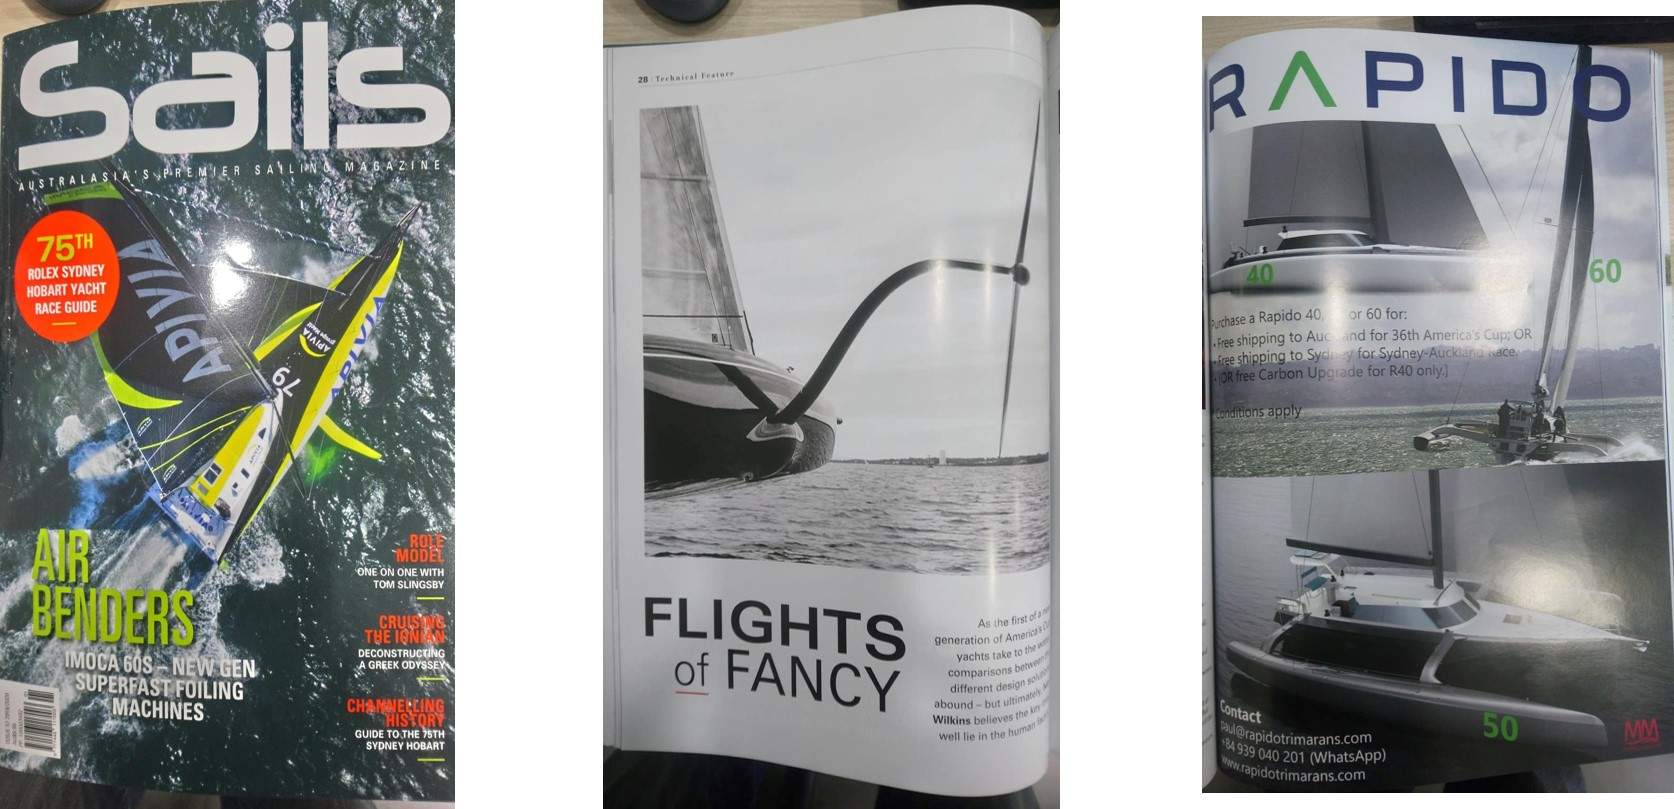 Sails Australia magazine, America's Cup and Rapido specials